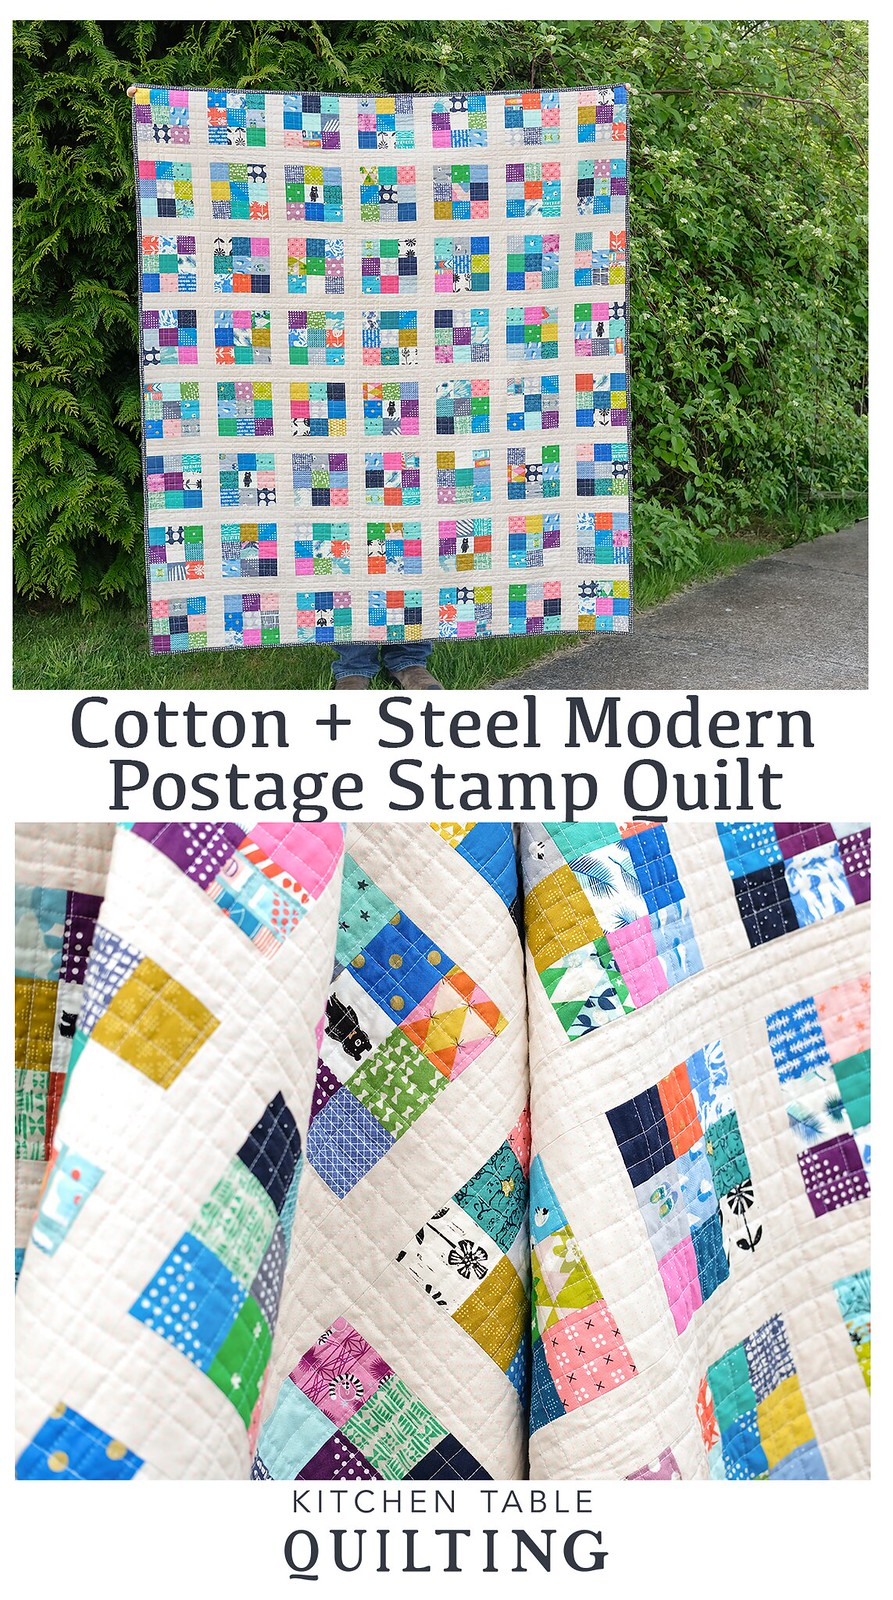 Cotton + Steel Modern Postage Stamp Quilt - Kitchen Table Quilting